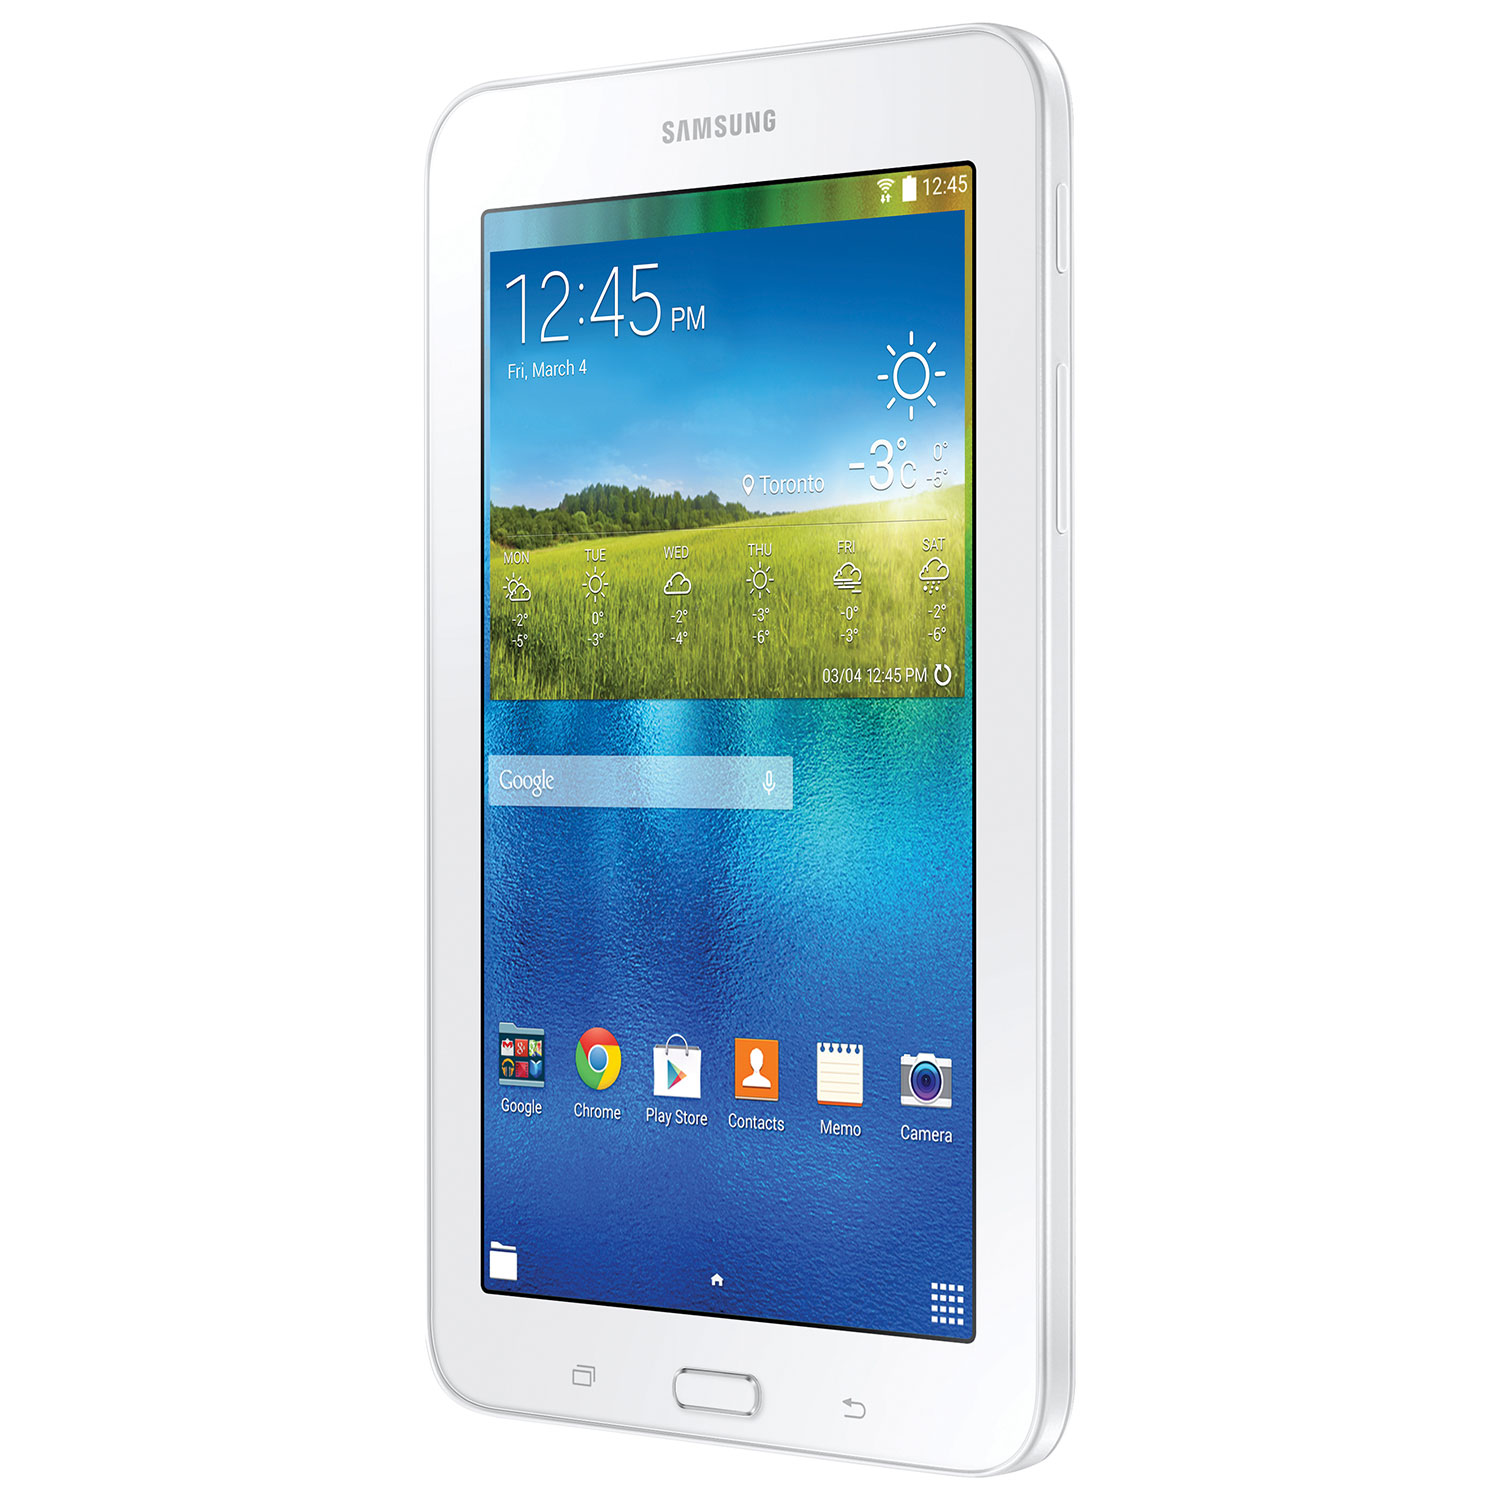 samsung galaxy tab lite android tablet with spreadtrum accent tablette fast shark quad core processor white tablets best pier imports dining table garden furniture winter covers